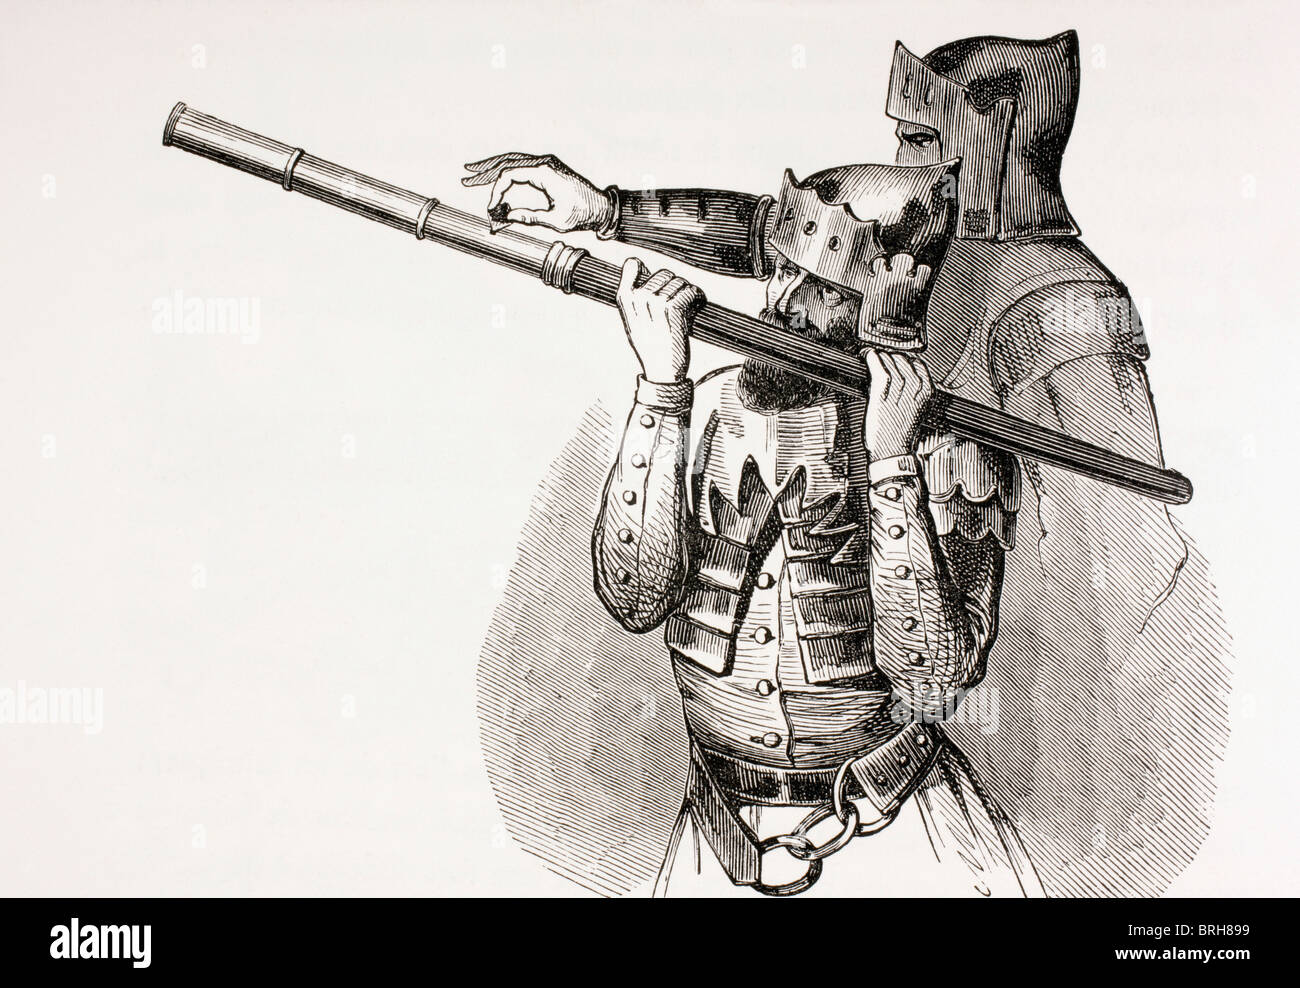 Two 15th century soldiers with a hand gun or firing baton. - Stock Image